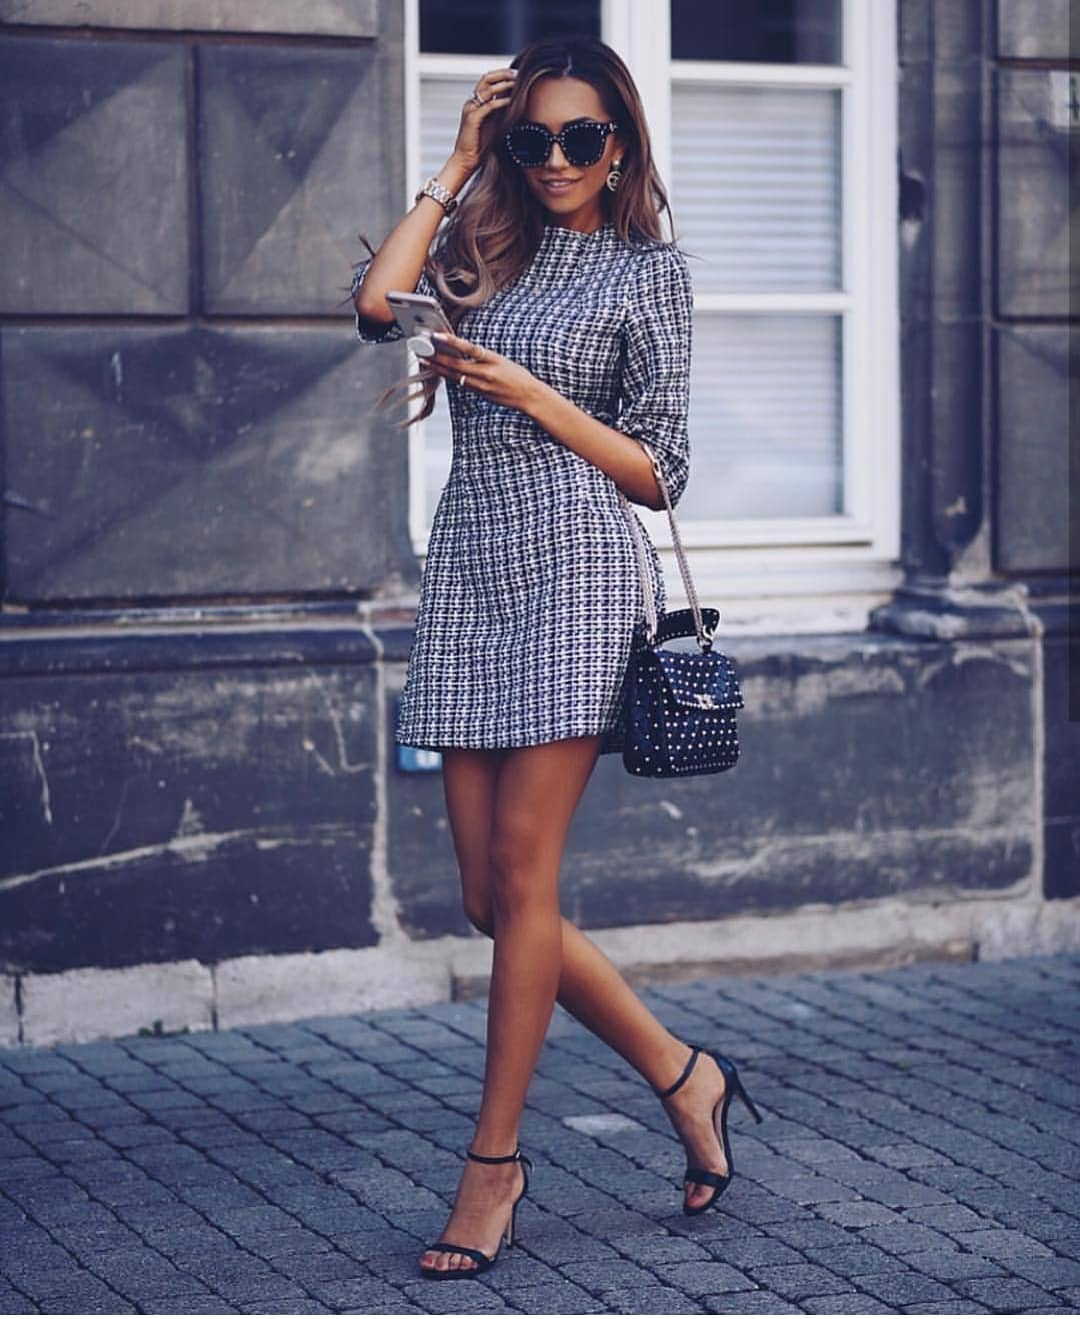 1/2 Sleeve Houndstooth Dress For Summer 2019